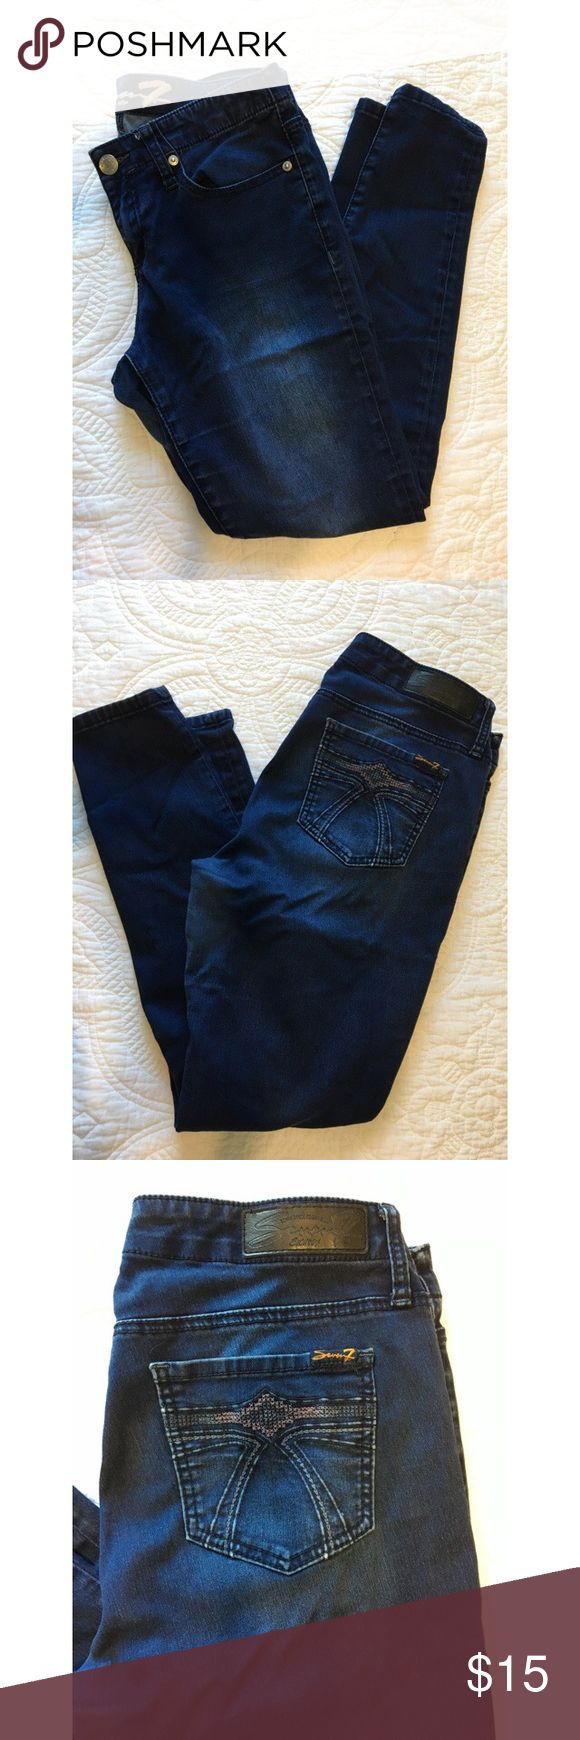 Seven7 jeggings MOVING SALE EVERYTHING MUST GO ASAP! OPEN TO ALL OFFERS AND BUNDLES!4 Seven7 Jeans Skinny